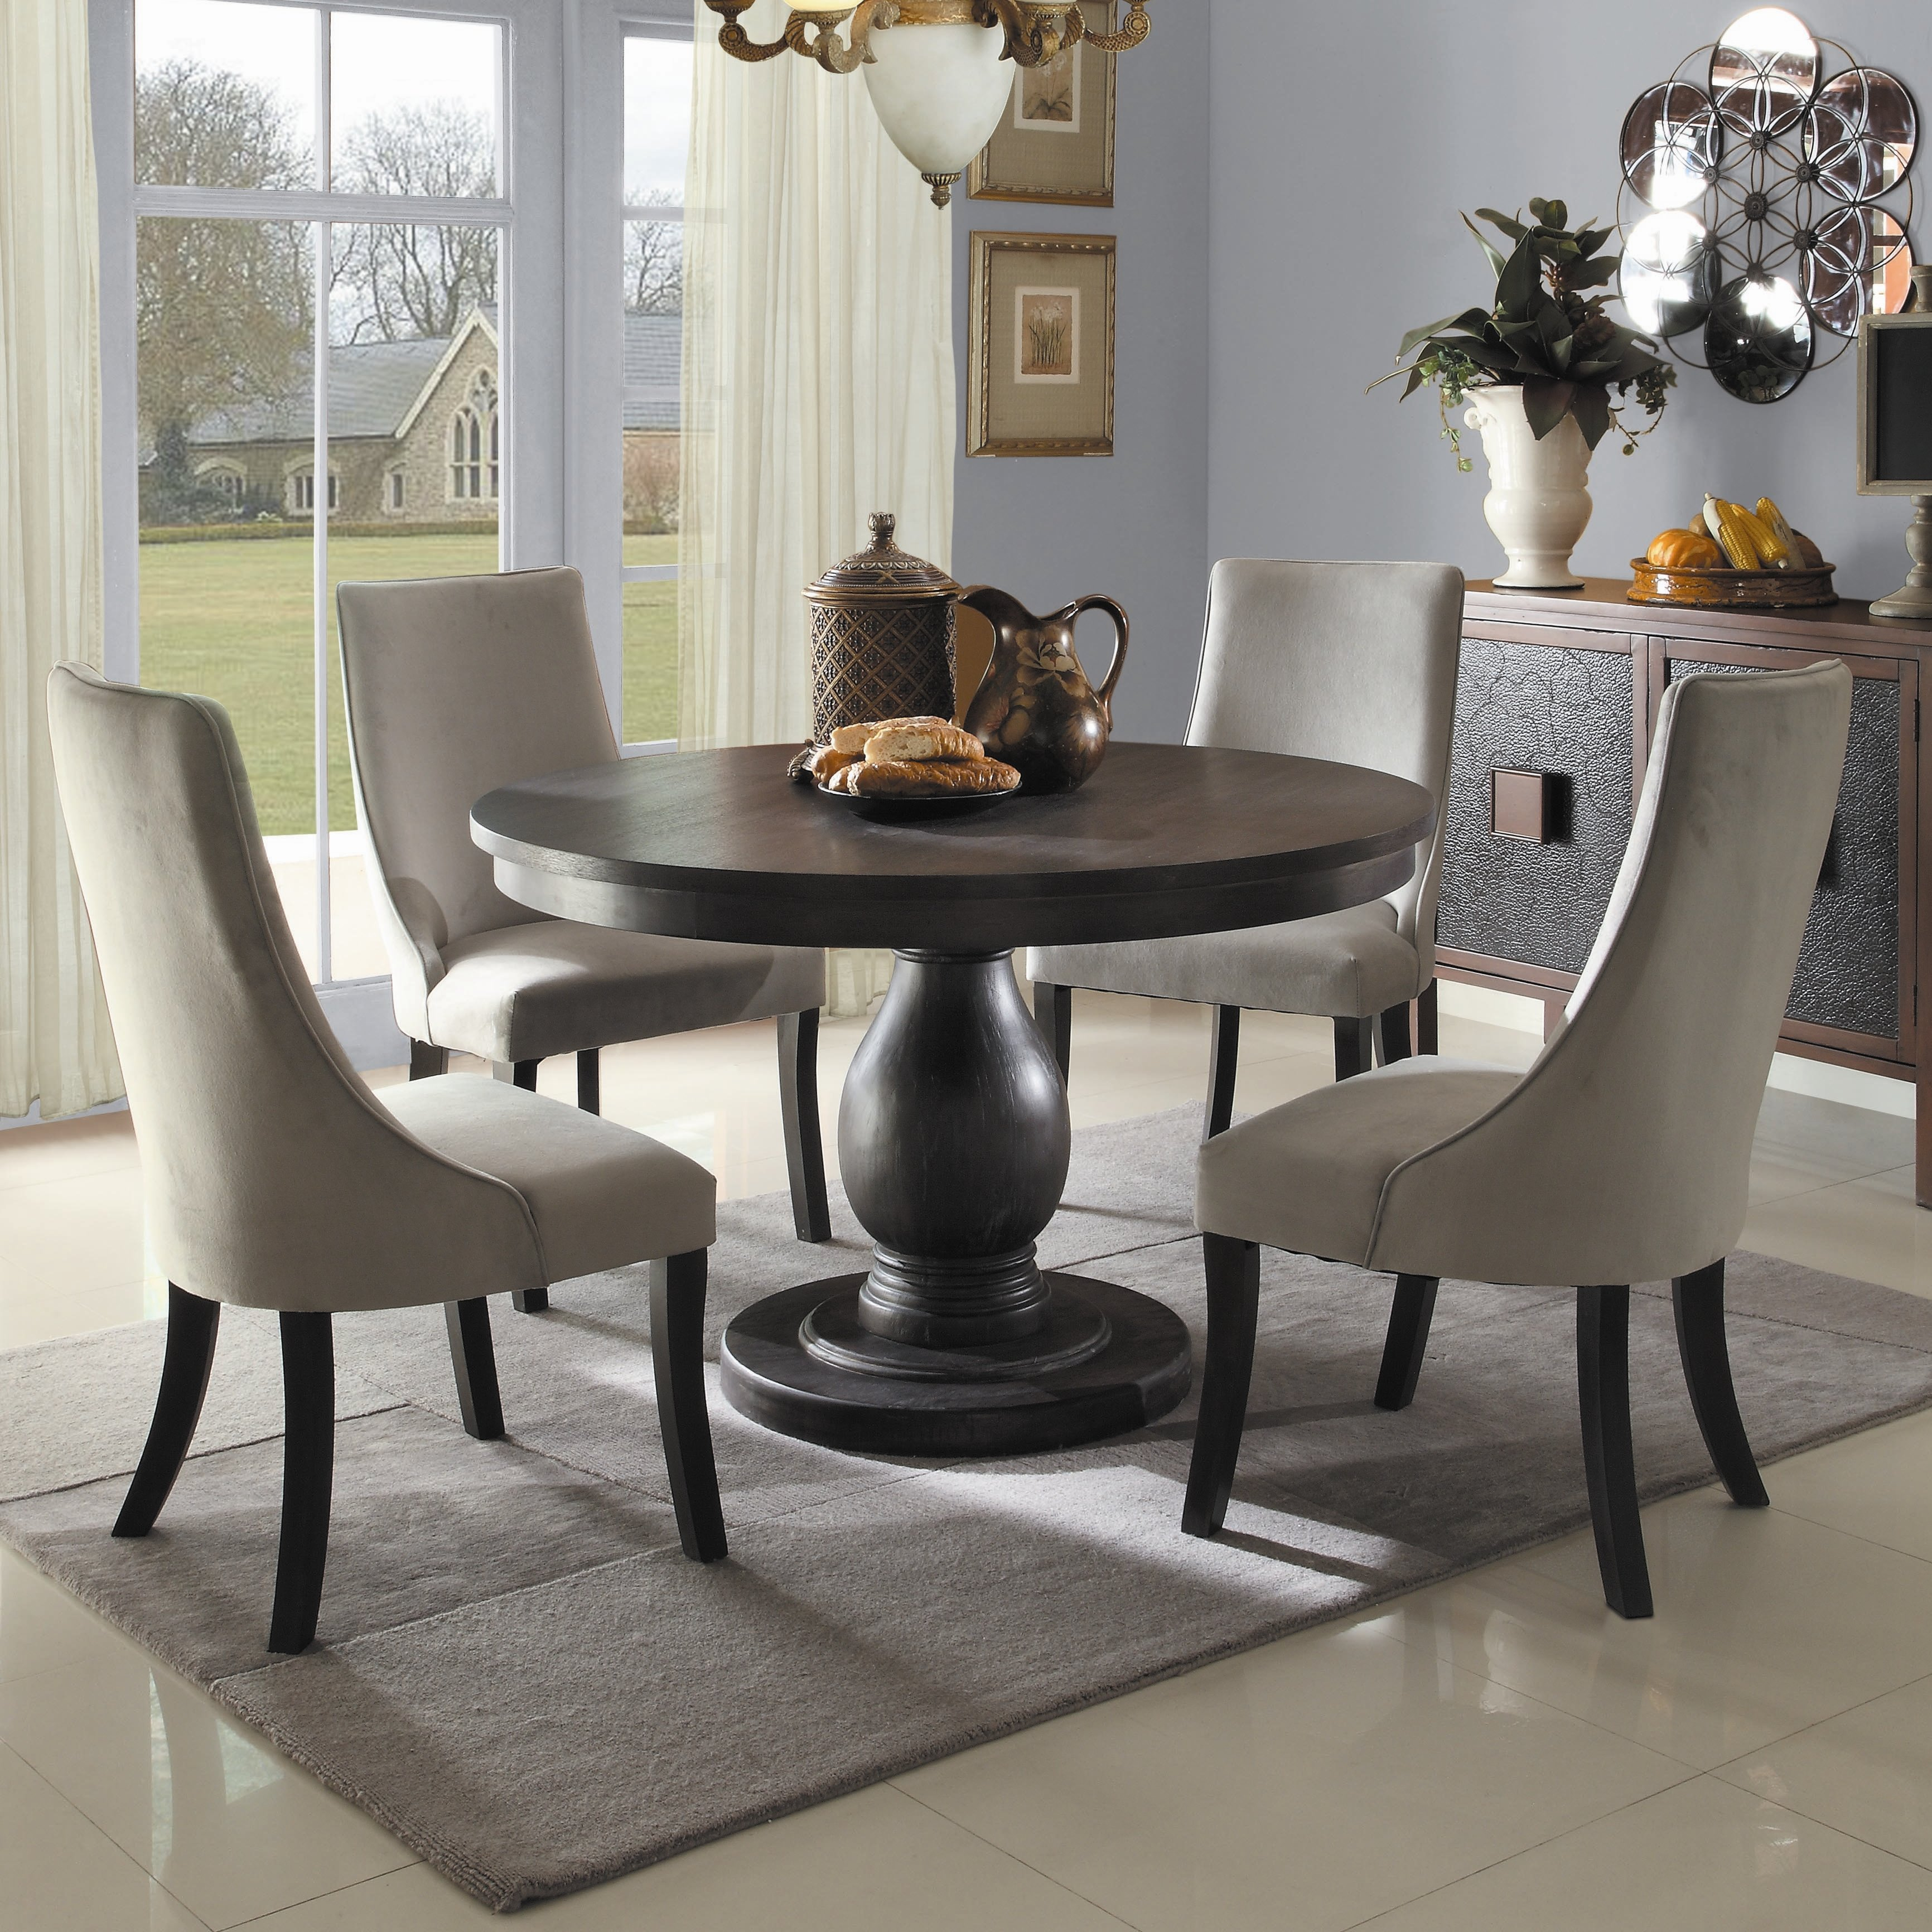 Barrington 5 Piece Dining Set With Best And Newest 5 Piece Dining Sets (View 16 of 20)